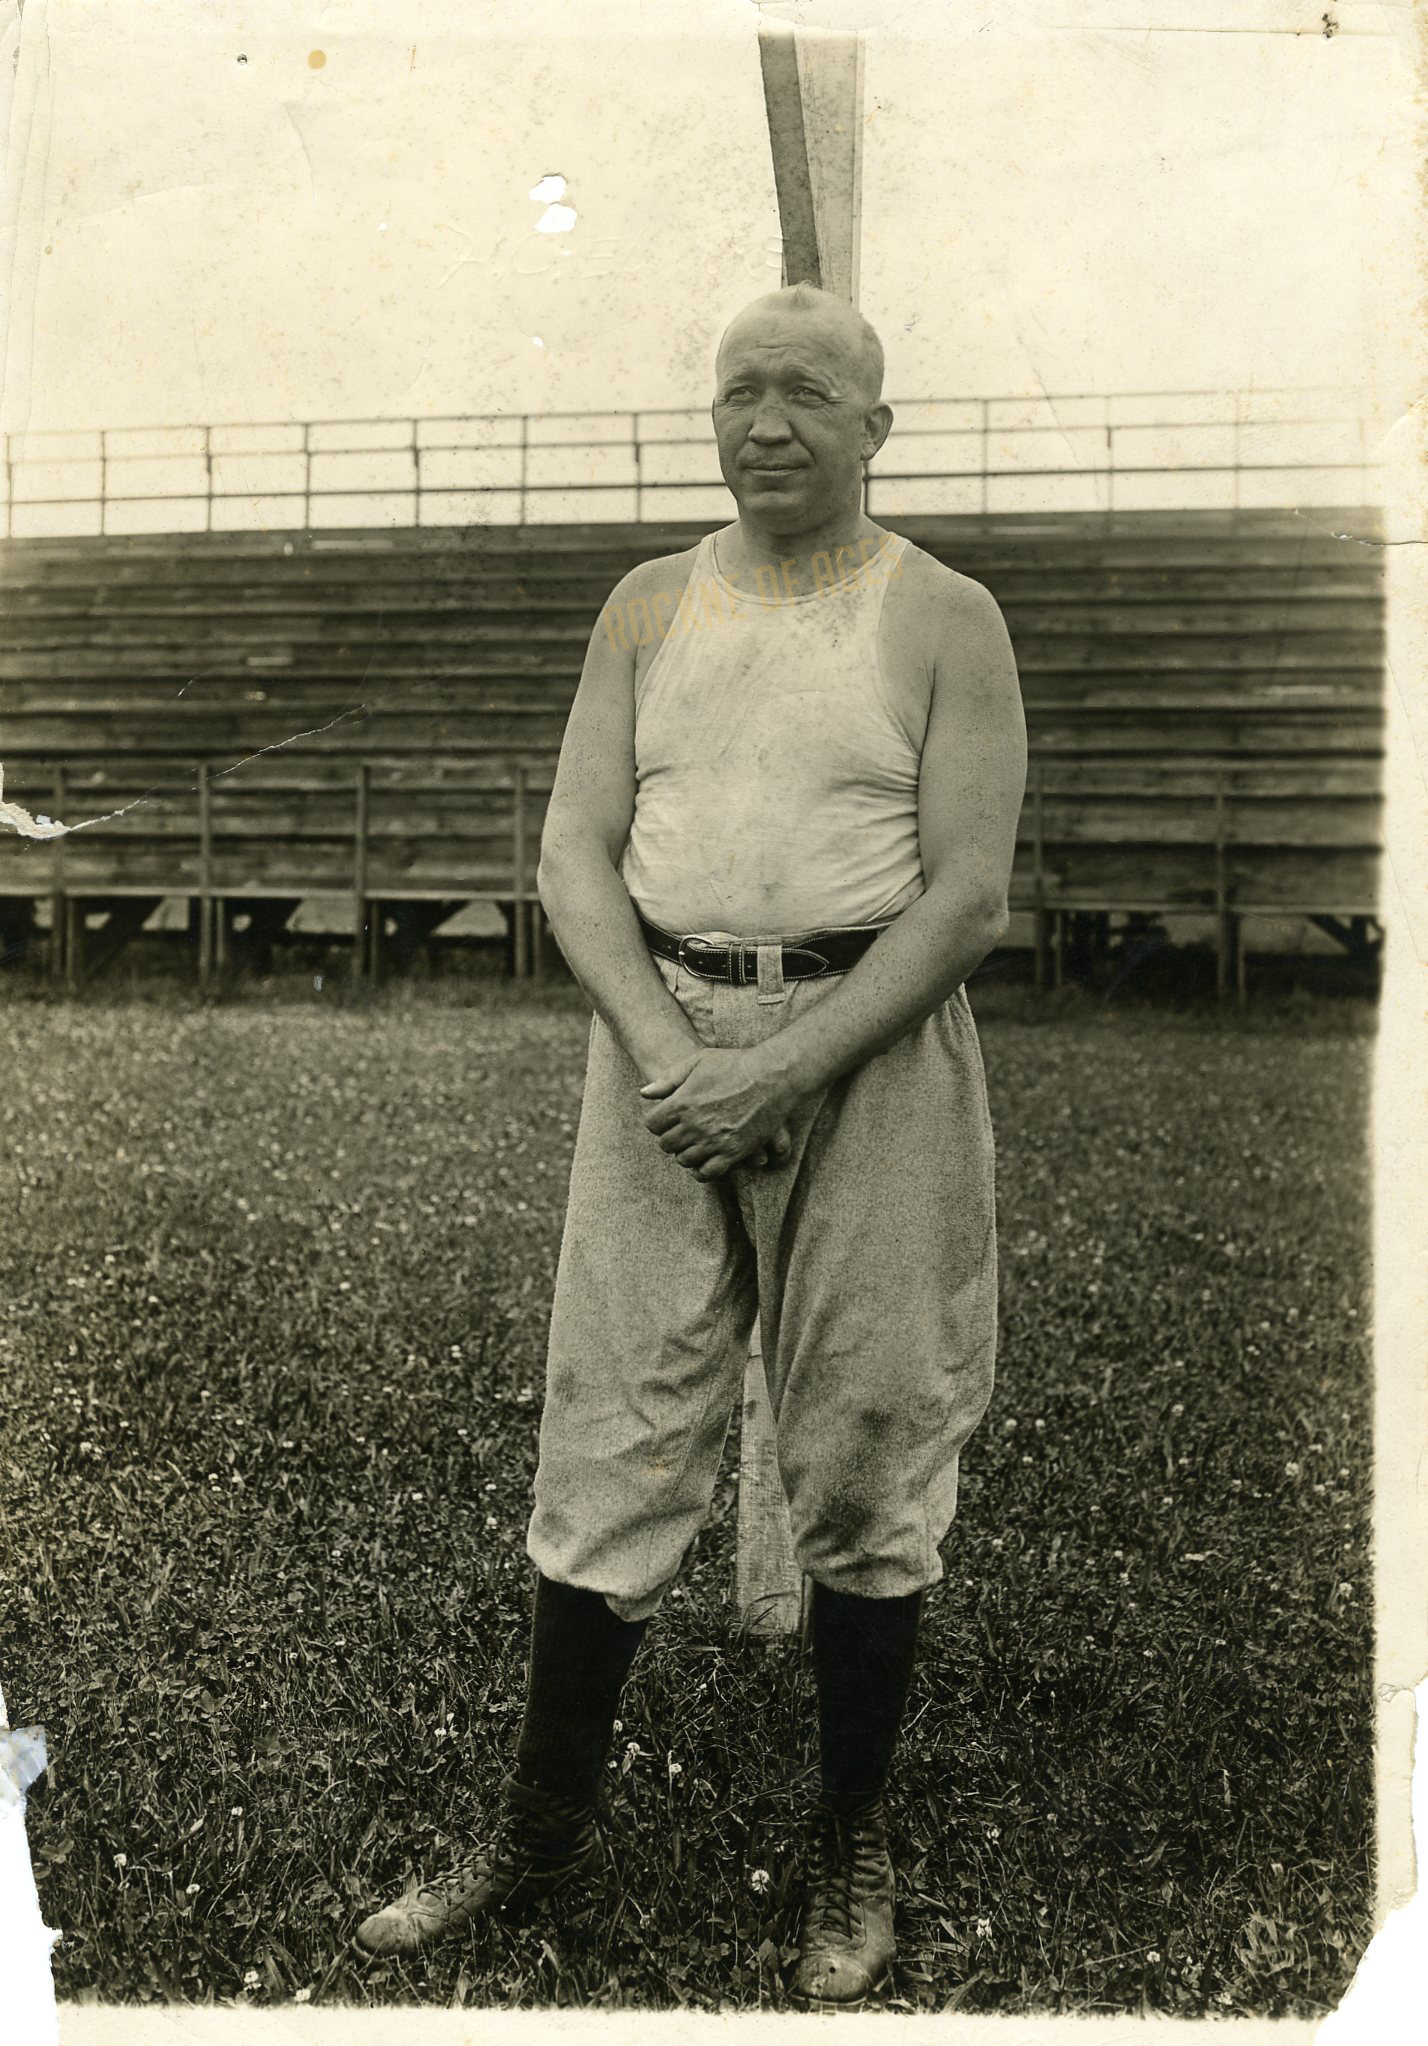 Rockne wearing baseball pants during football practice at Cartier Field.